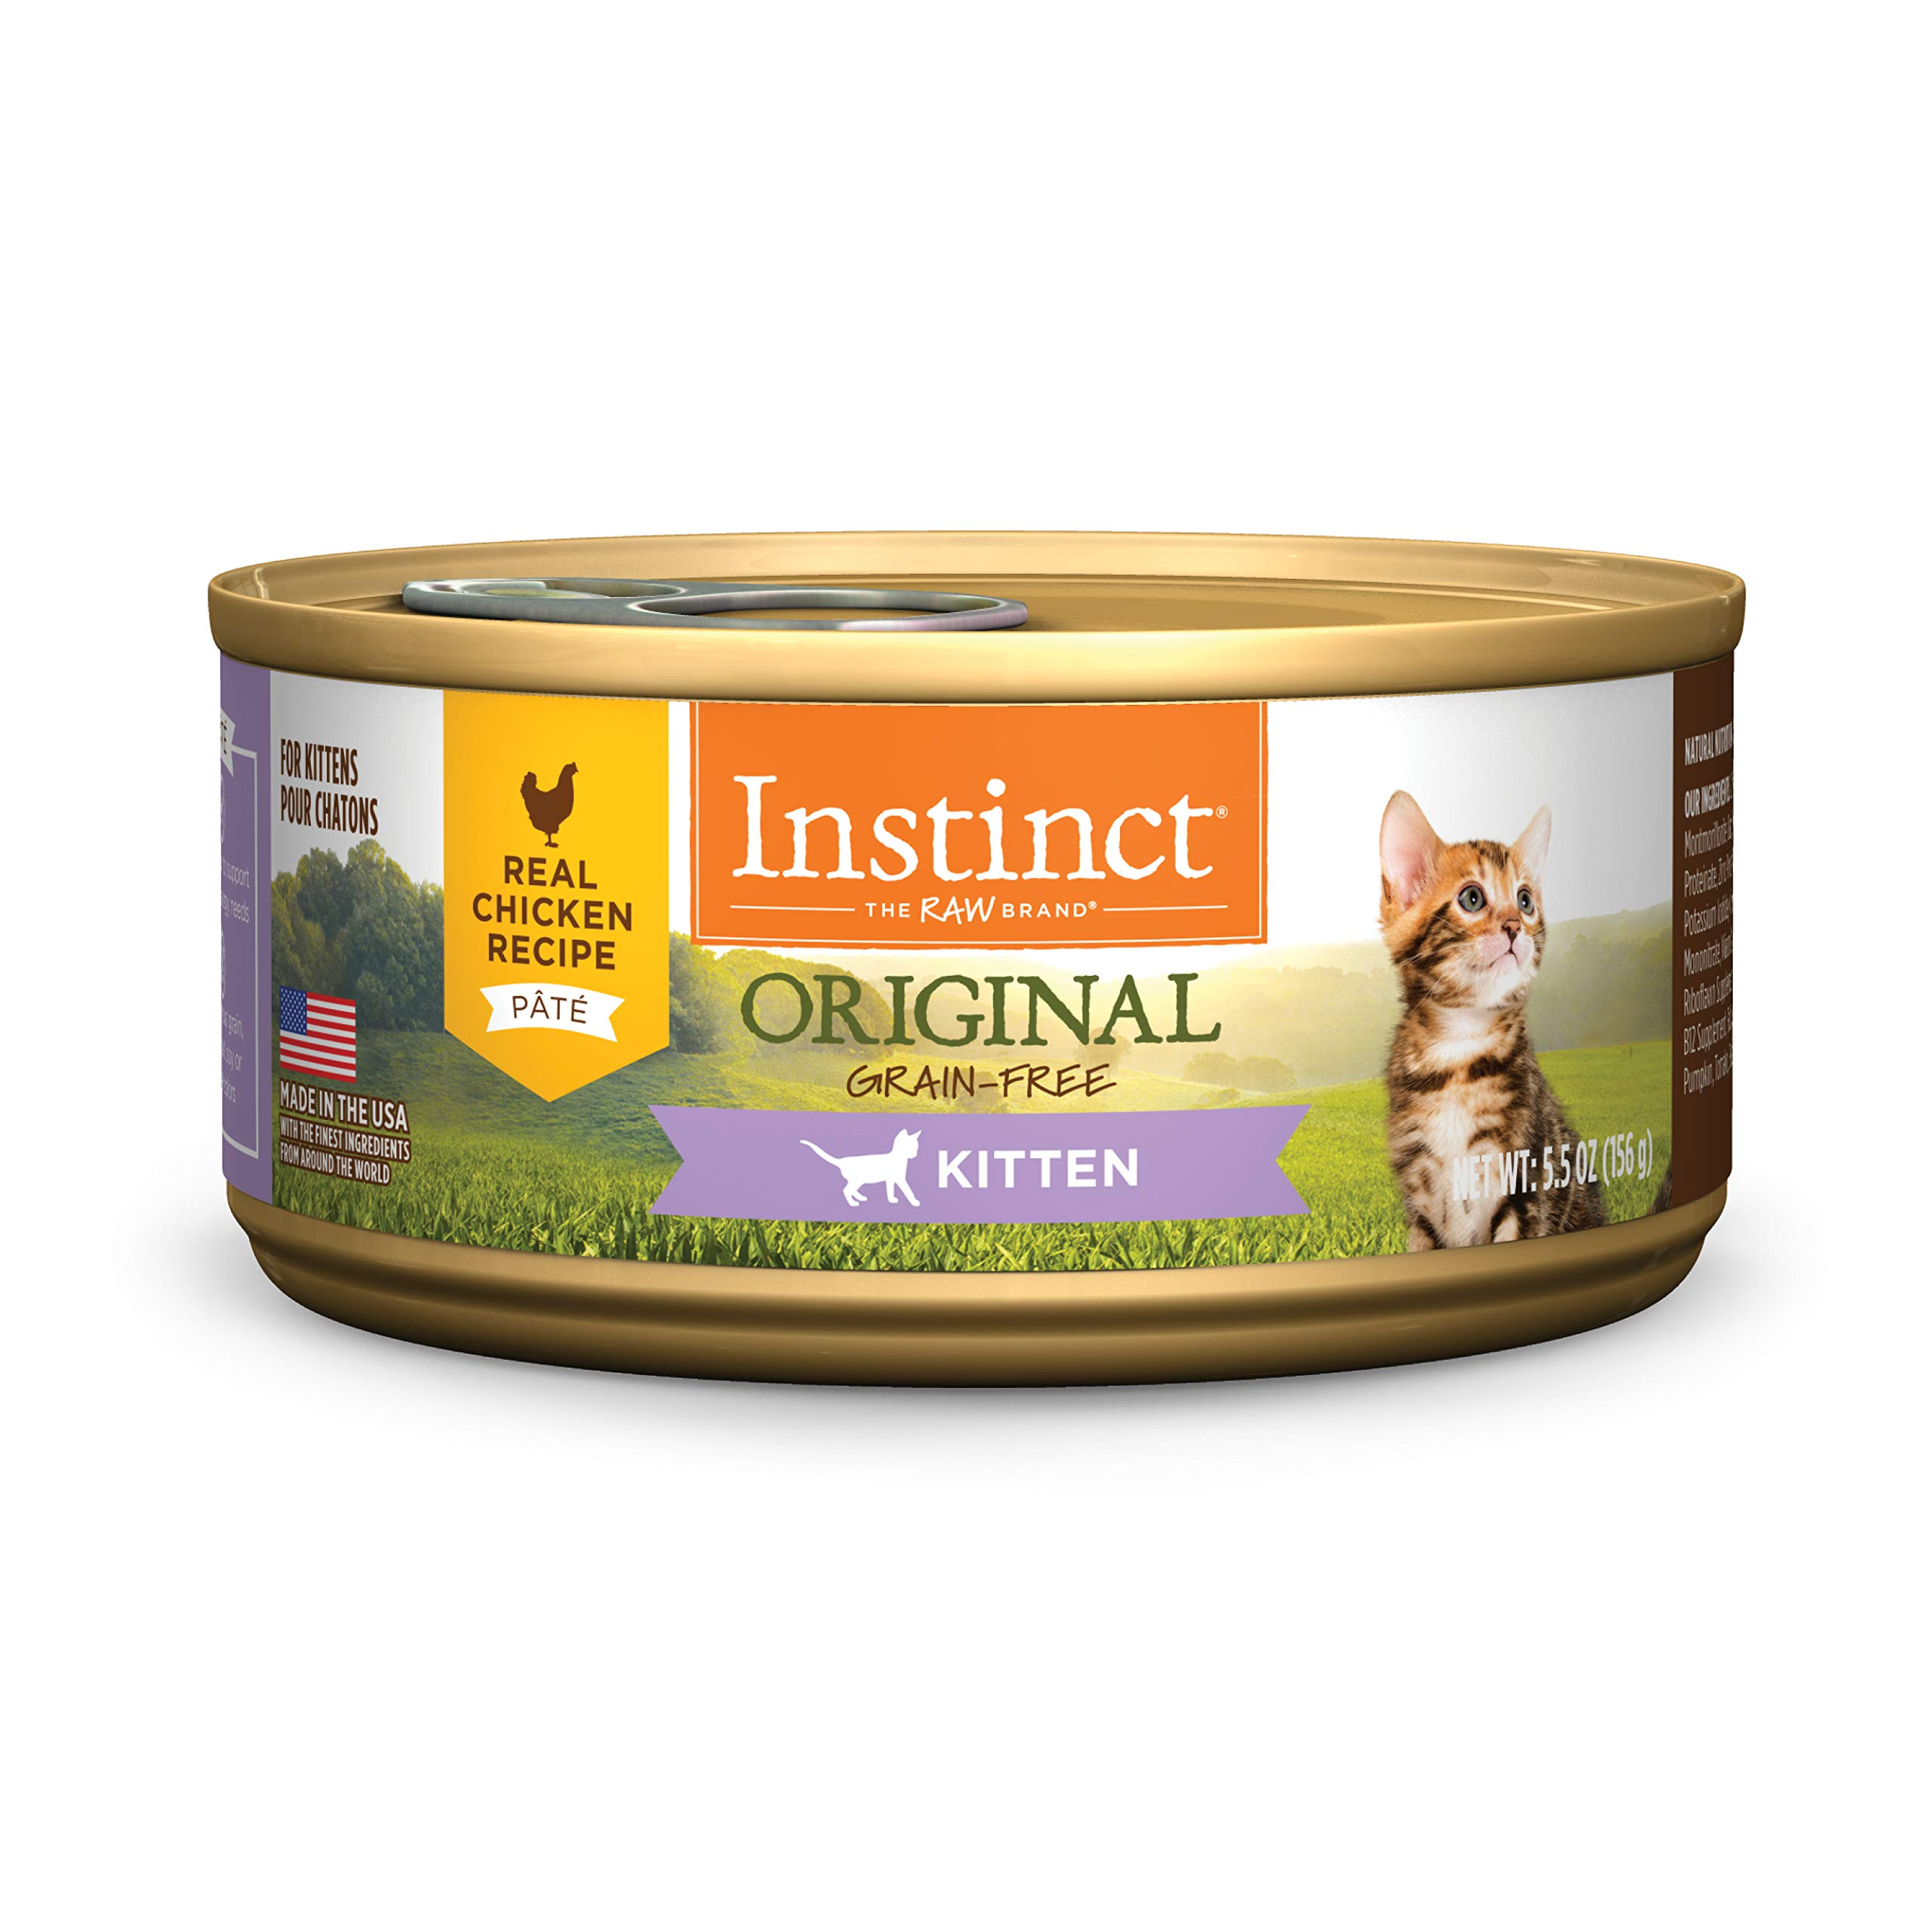 Instinct Original Kitten Grain Free Real Chicken Recipe Natural Wet Canned Cat Food by Nature's Variety, 5.5 oz. Cans (Case of 12) by Instinct